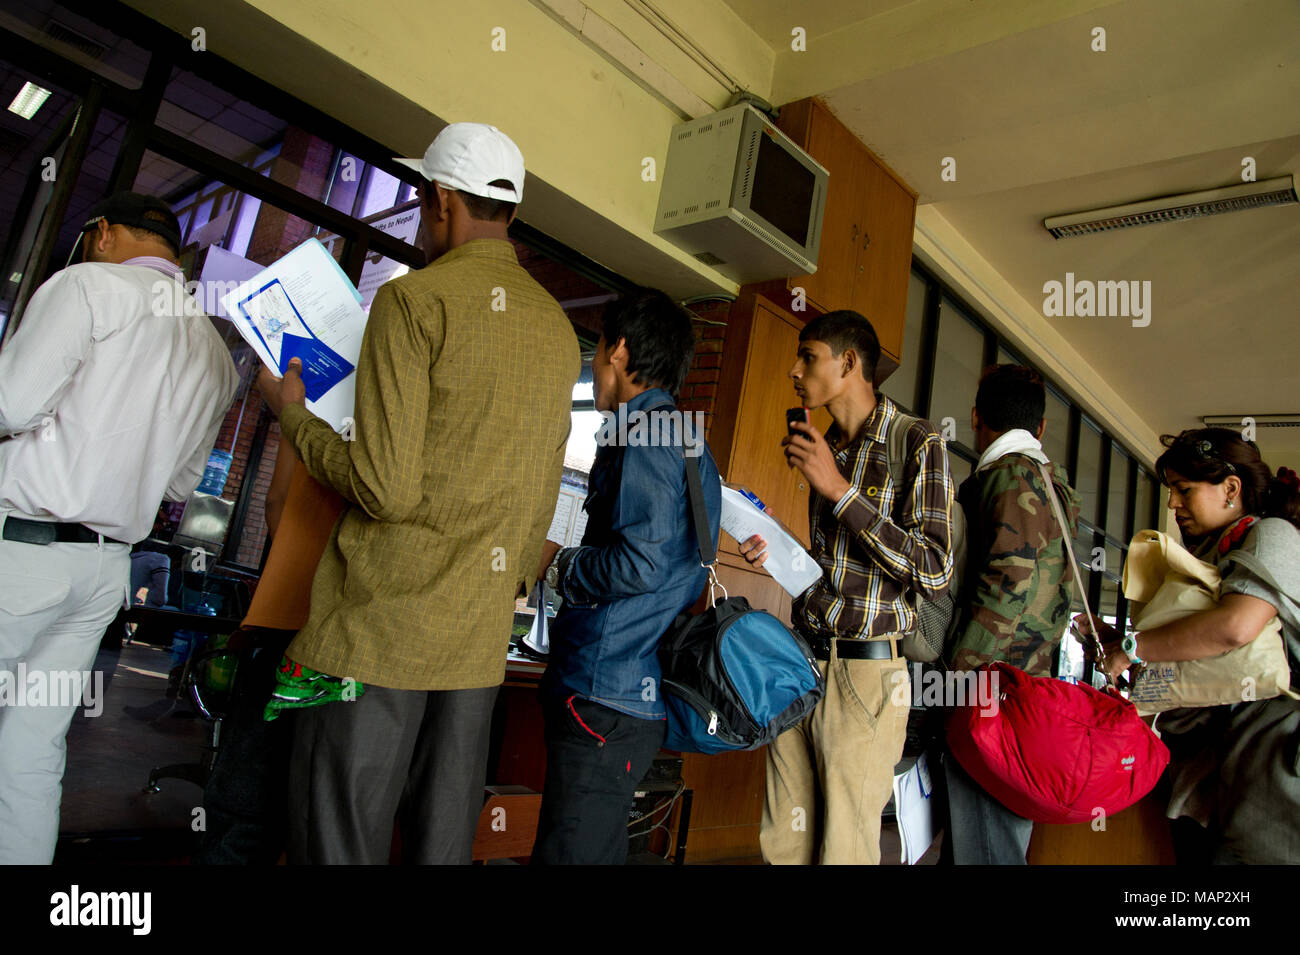 Nepal 2014. Kathmandu airport. Migrant workers about to travel to the Gulf, queing to board a flight to Doha, Qatar - Stock Image